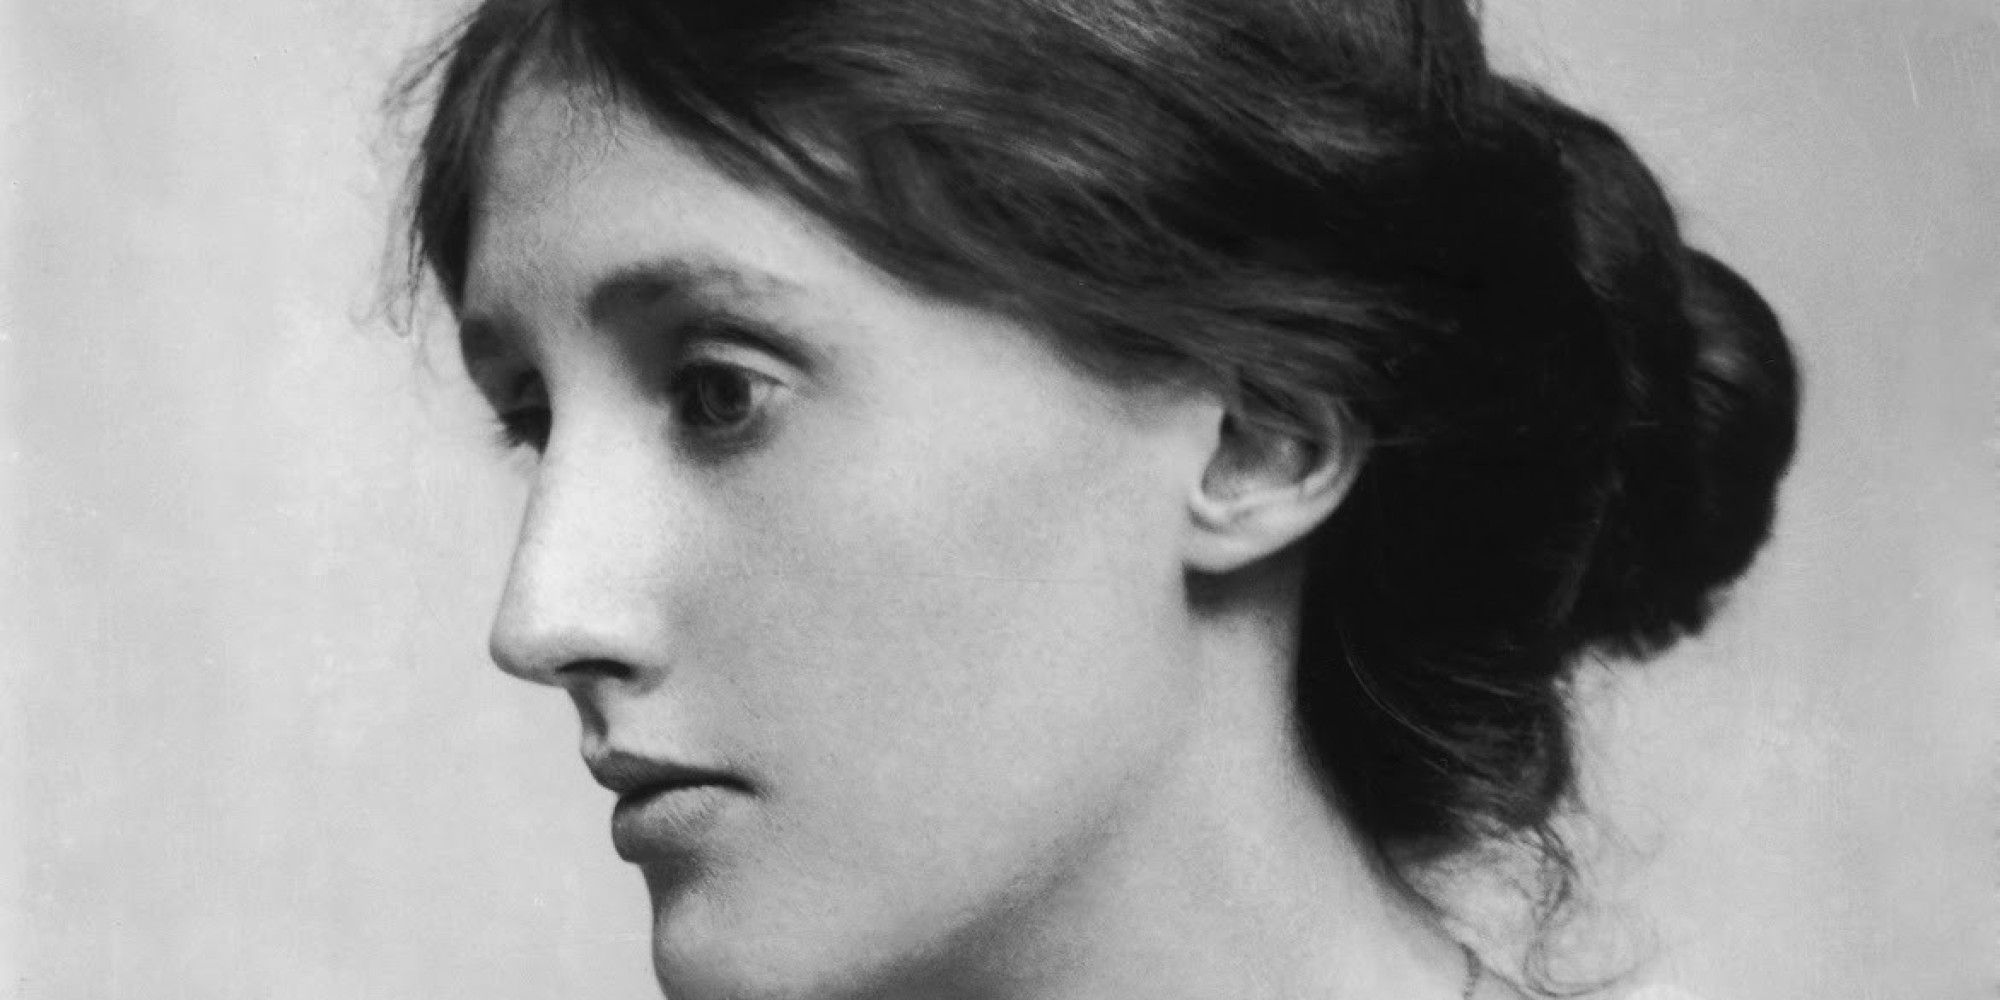 virginia woolf s powerful essay on illness folks woolf as a young w